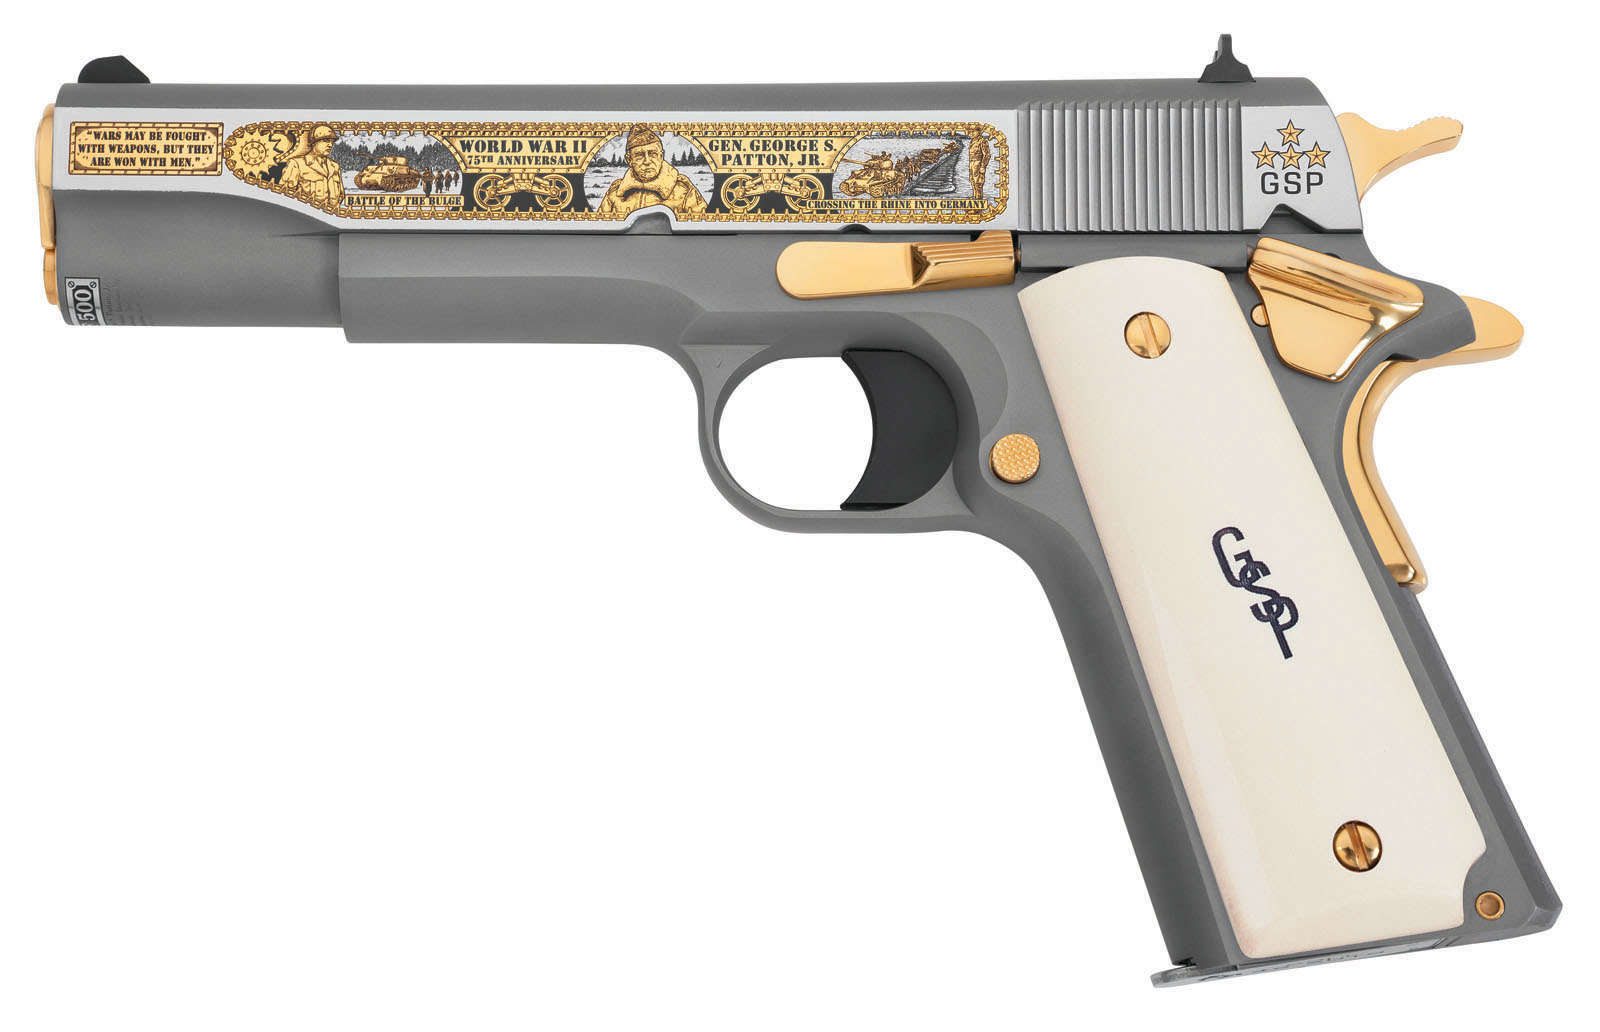 hight resolution of general george s patton jr wwii 75th anniversary tribute pistol